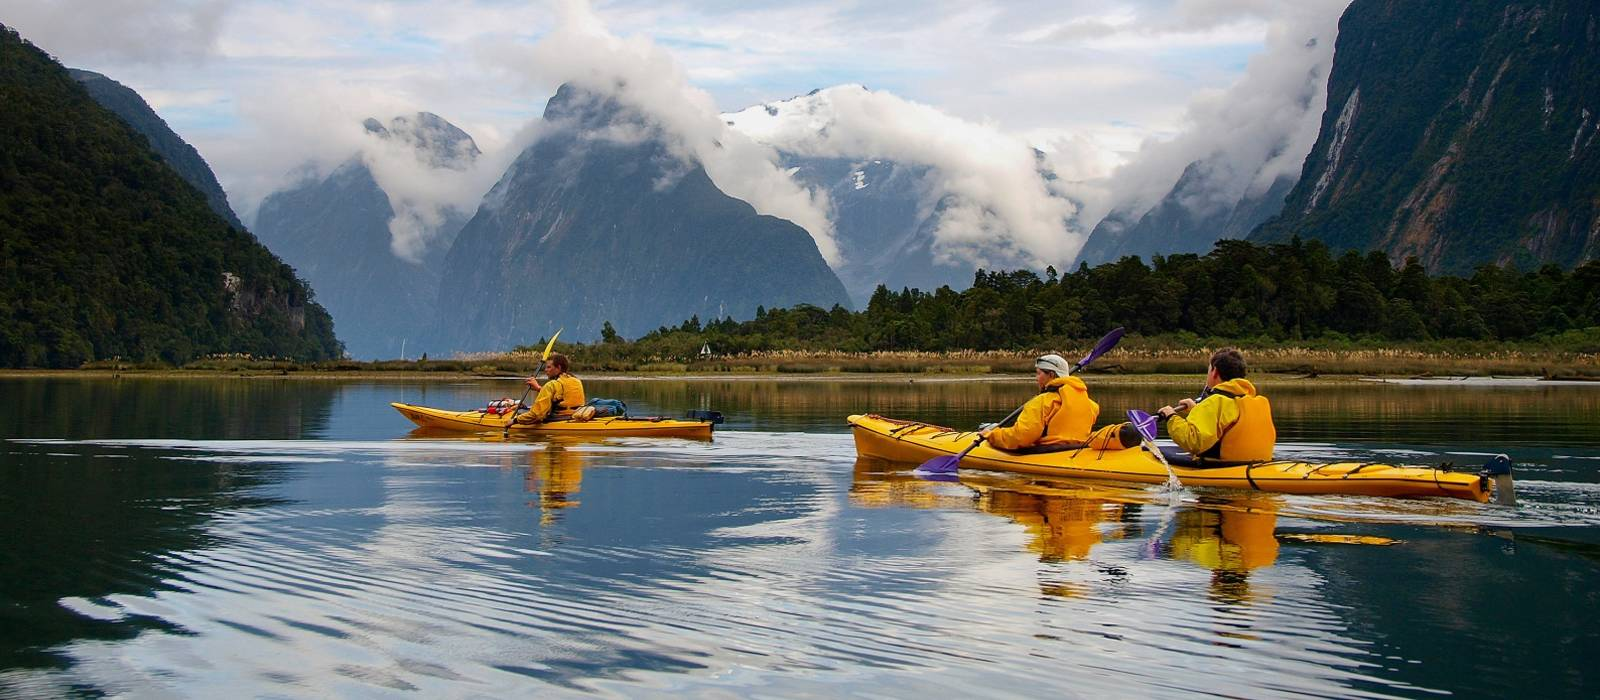 Is New Zealand safe? Kayaking in Milford Sound